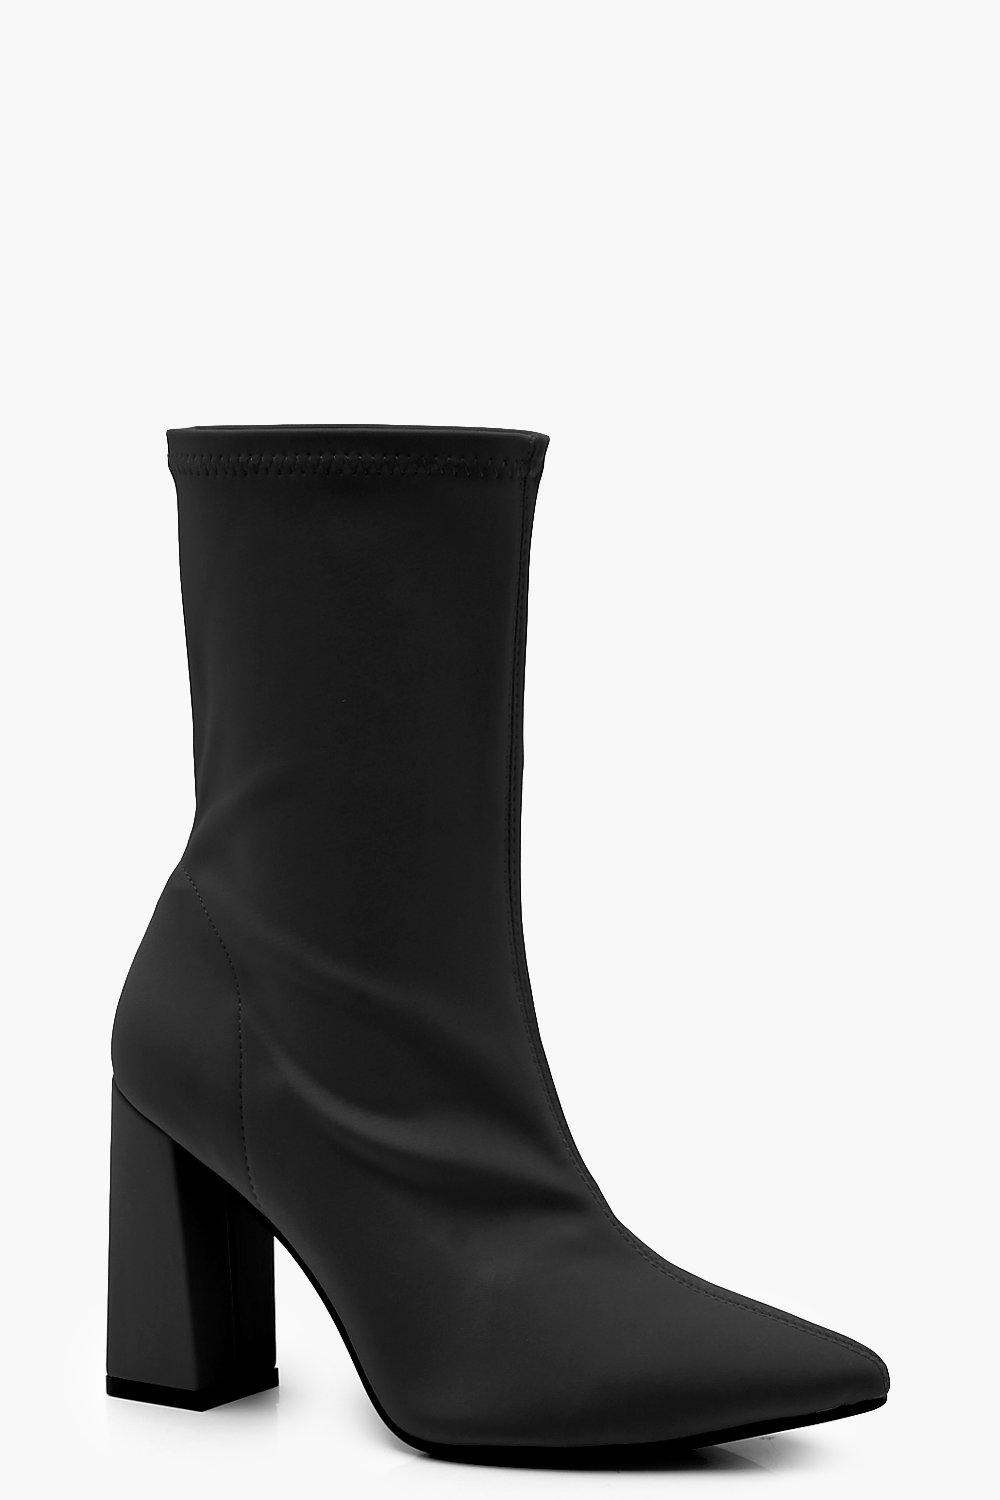 4ad638b9266d Womens Black Stretch Pointed Toe Block Heel Sock Boots. Hover to zoom